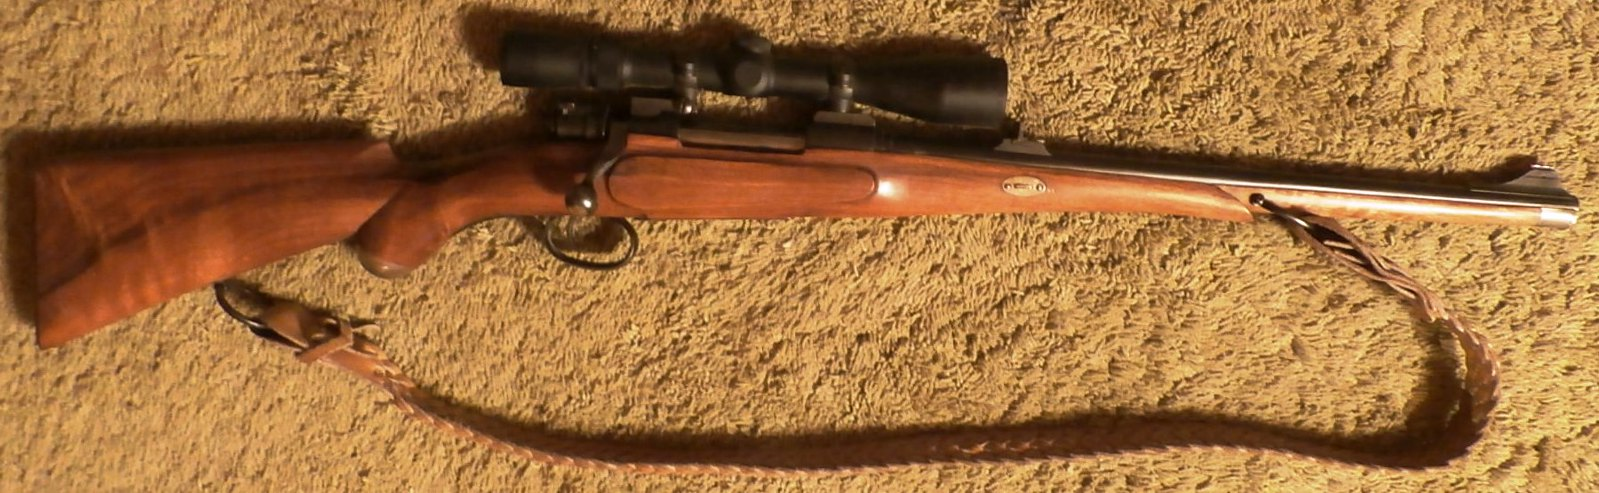 8mm Mauser for hunting   anyone ?!?! - 24hourcampfire